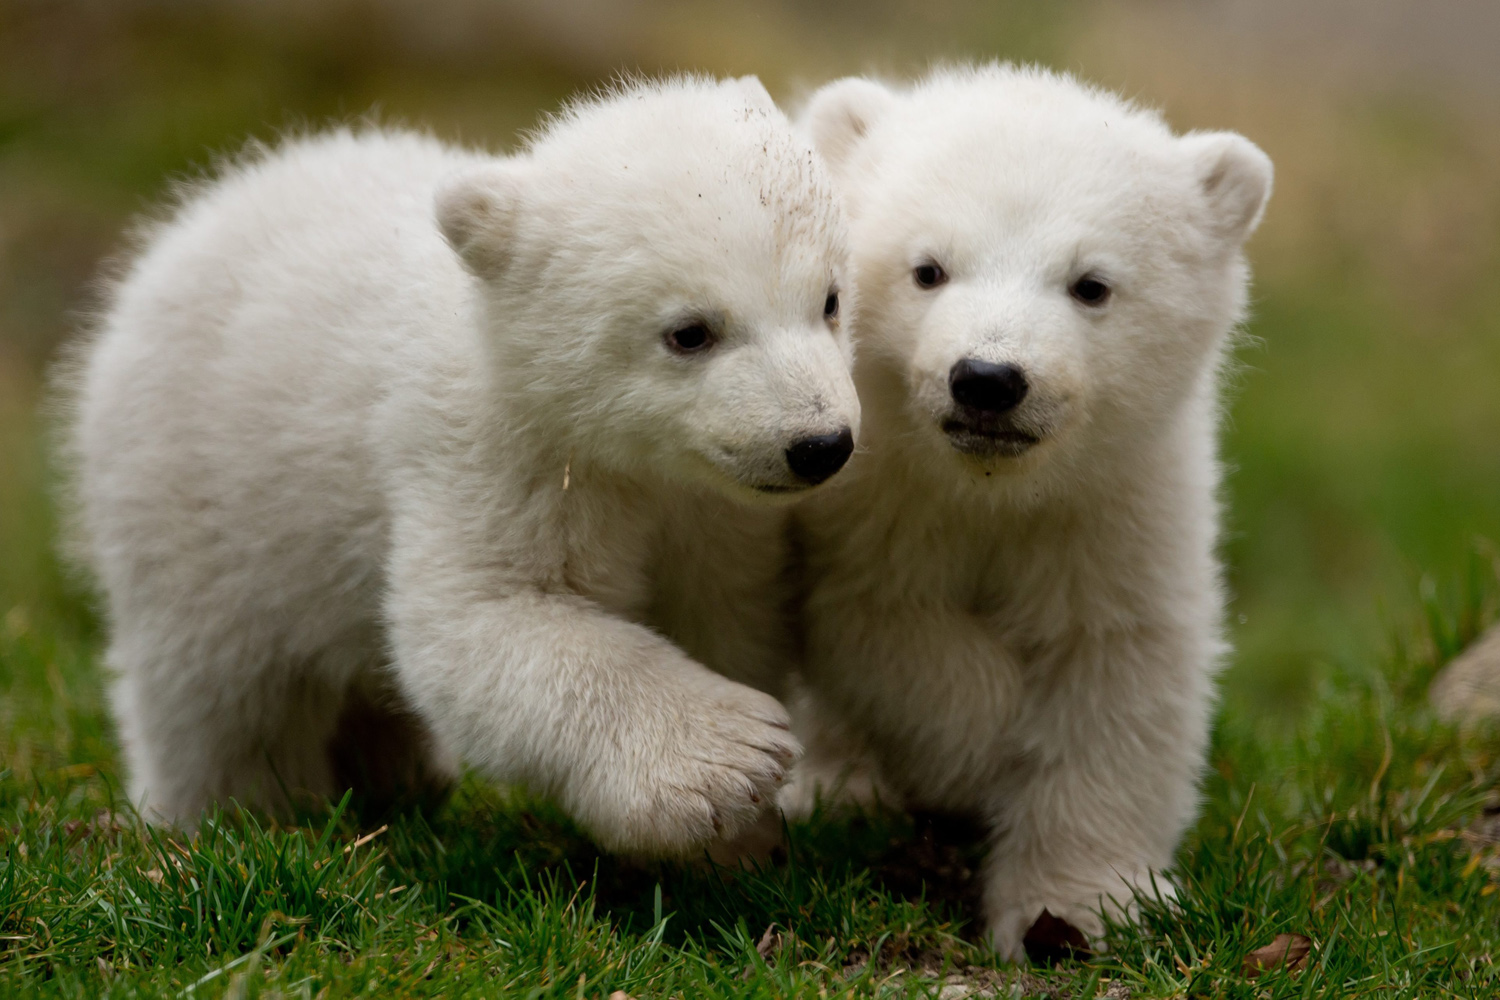 Mar. 19, 2014. Two 14-week old polar bear twins explore their enclosure at the Hellabrunn Zoo for the first time in Munich, Germany. The cubs were born on Mar. 9,  2014.